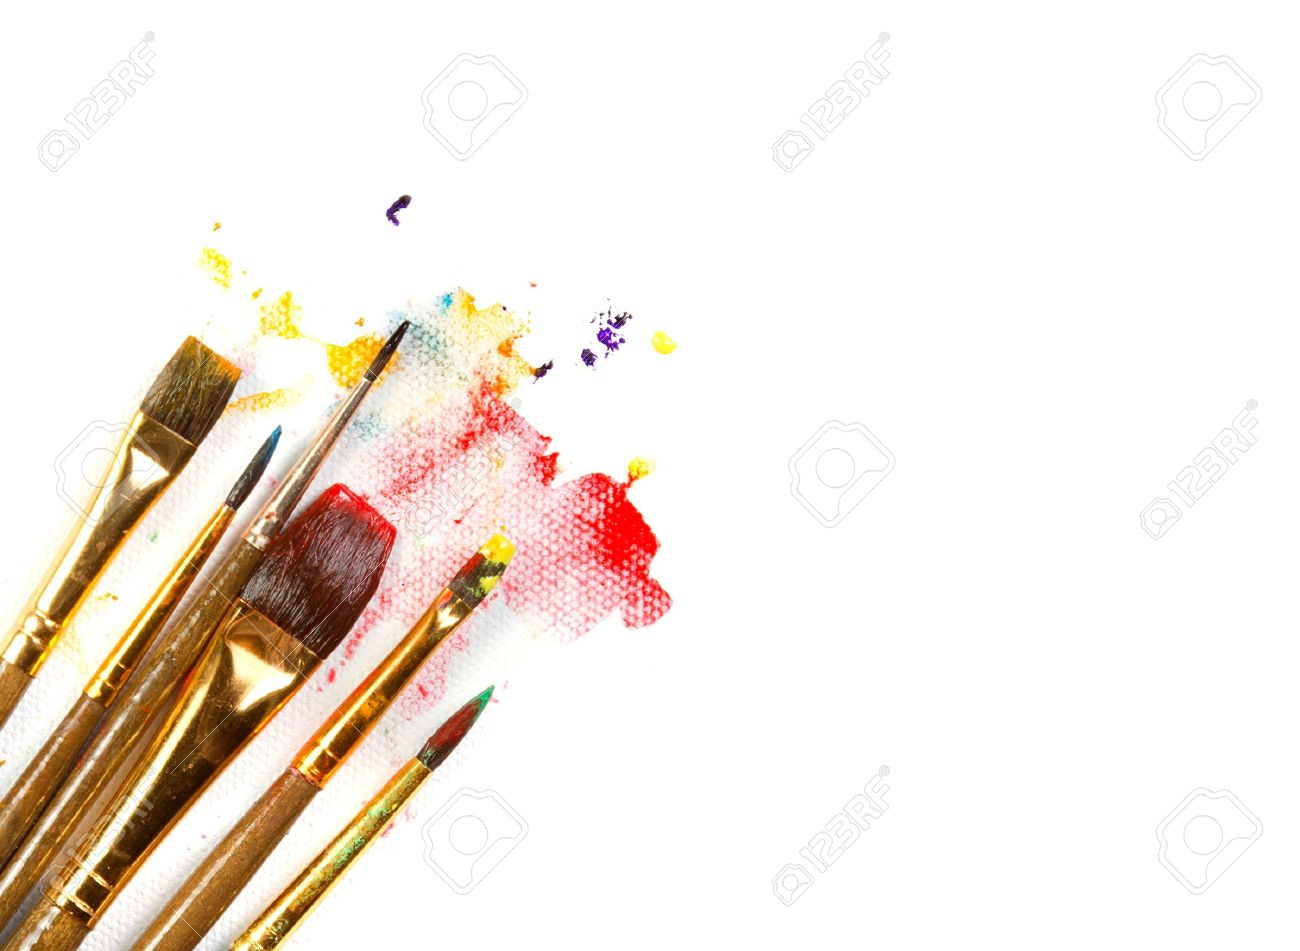 Assorted paint brushes on canvas background with paint splatter on white background Stock Photo - 13497888